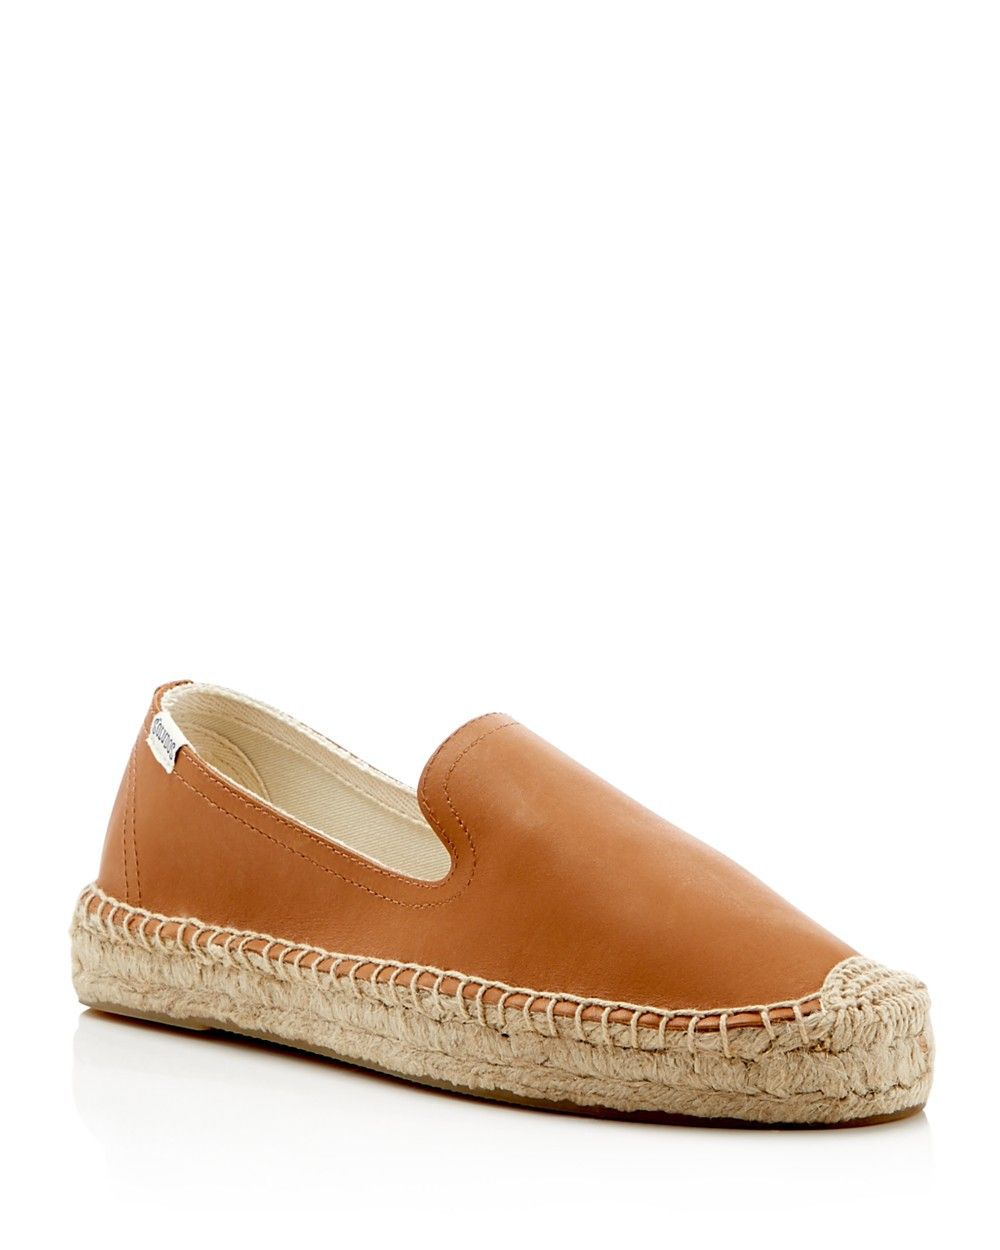 f66d888313c5 SOLUDOS Soludos Women s Leather Smoking Slipper Platform Espadrille Flats.   soludos  shoes